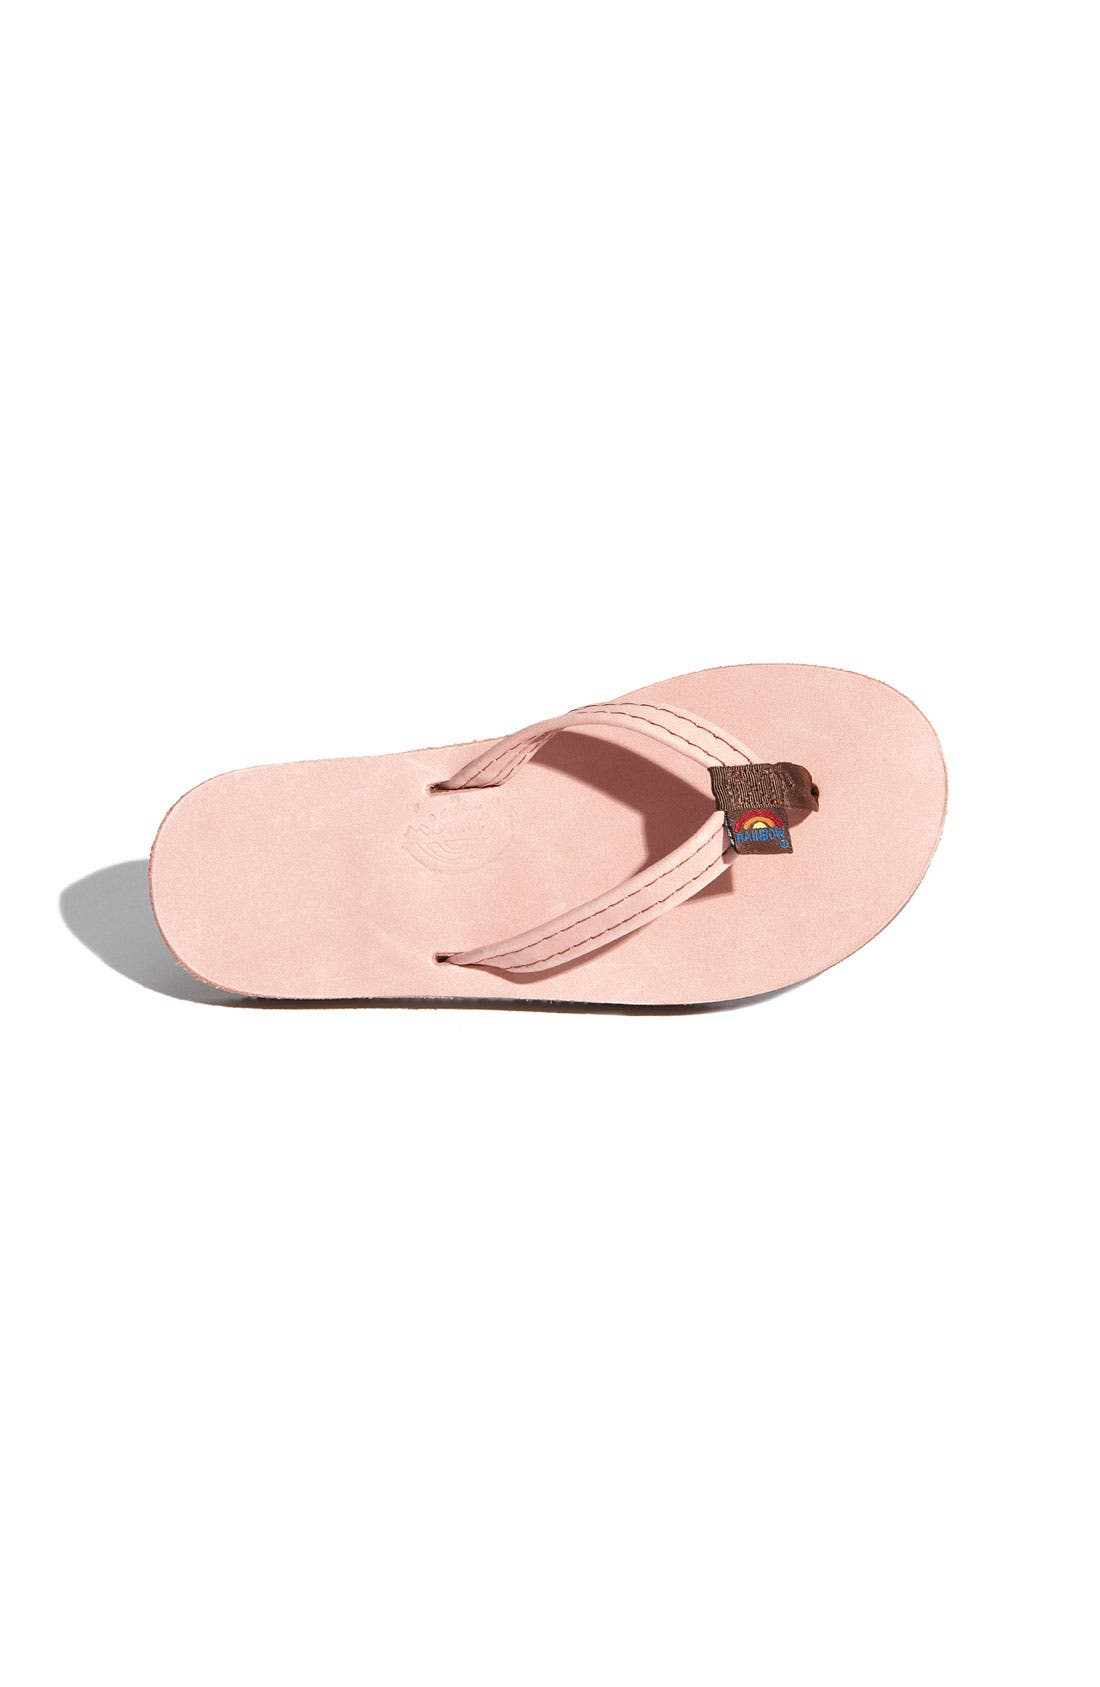 Alternate Image 3  - Rainbow Leather Flip Flop (Toddler, Little Kid & Big Kid)